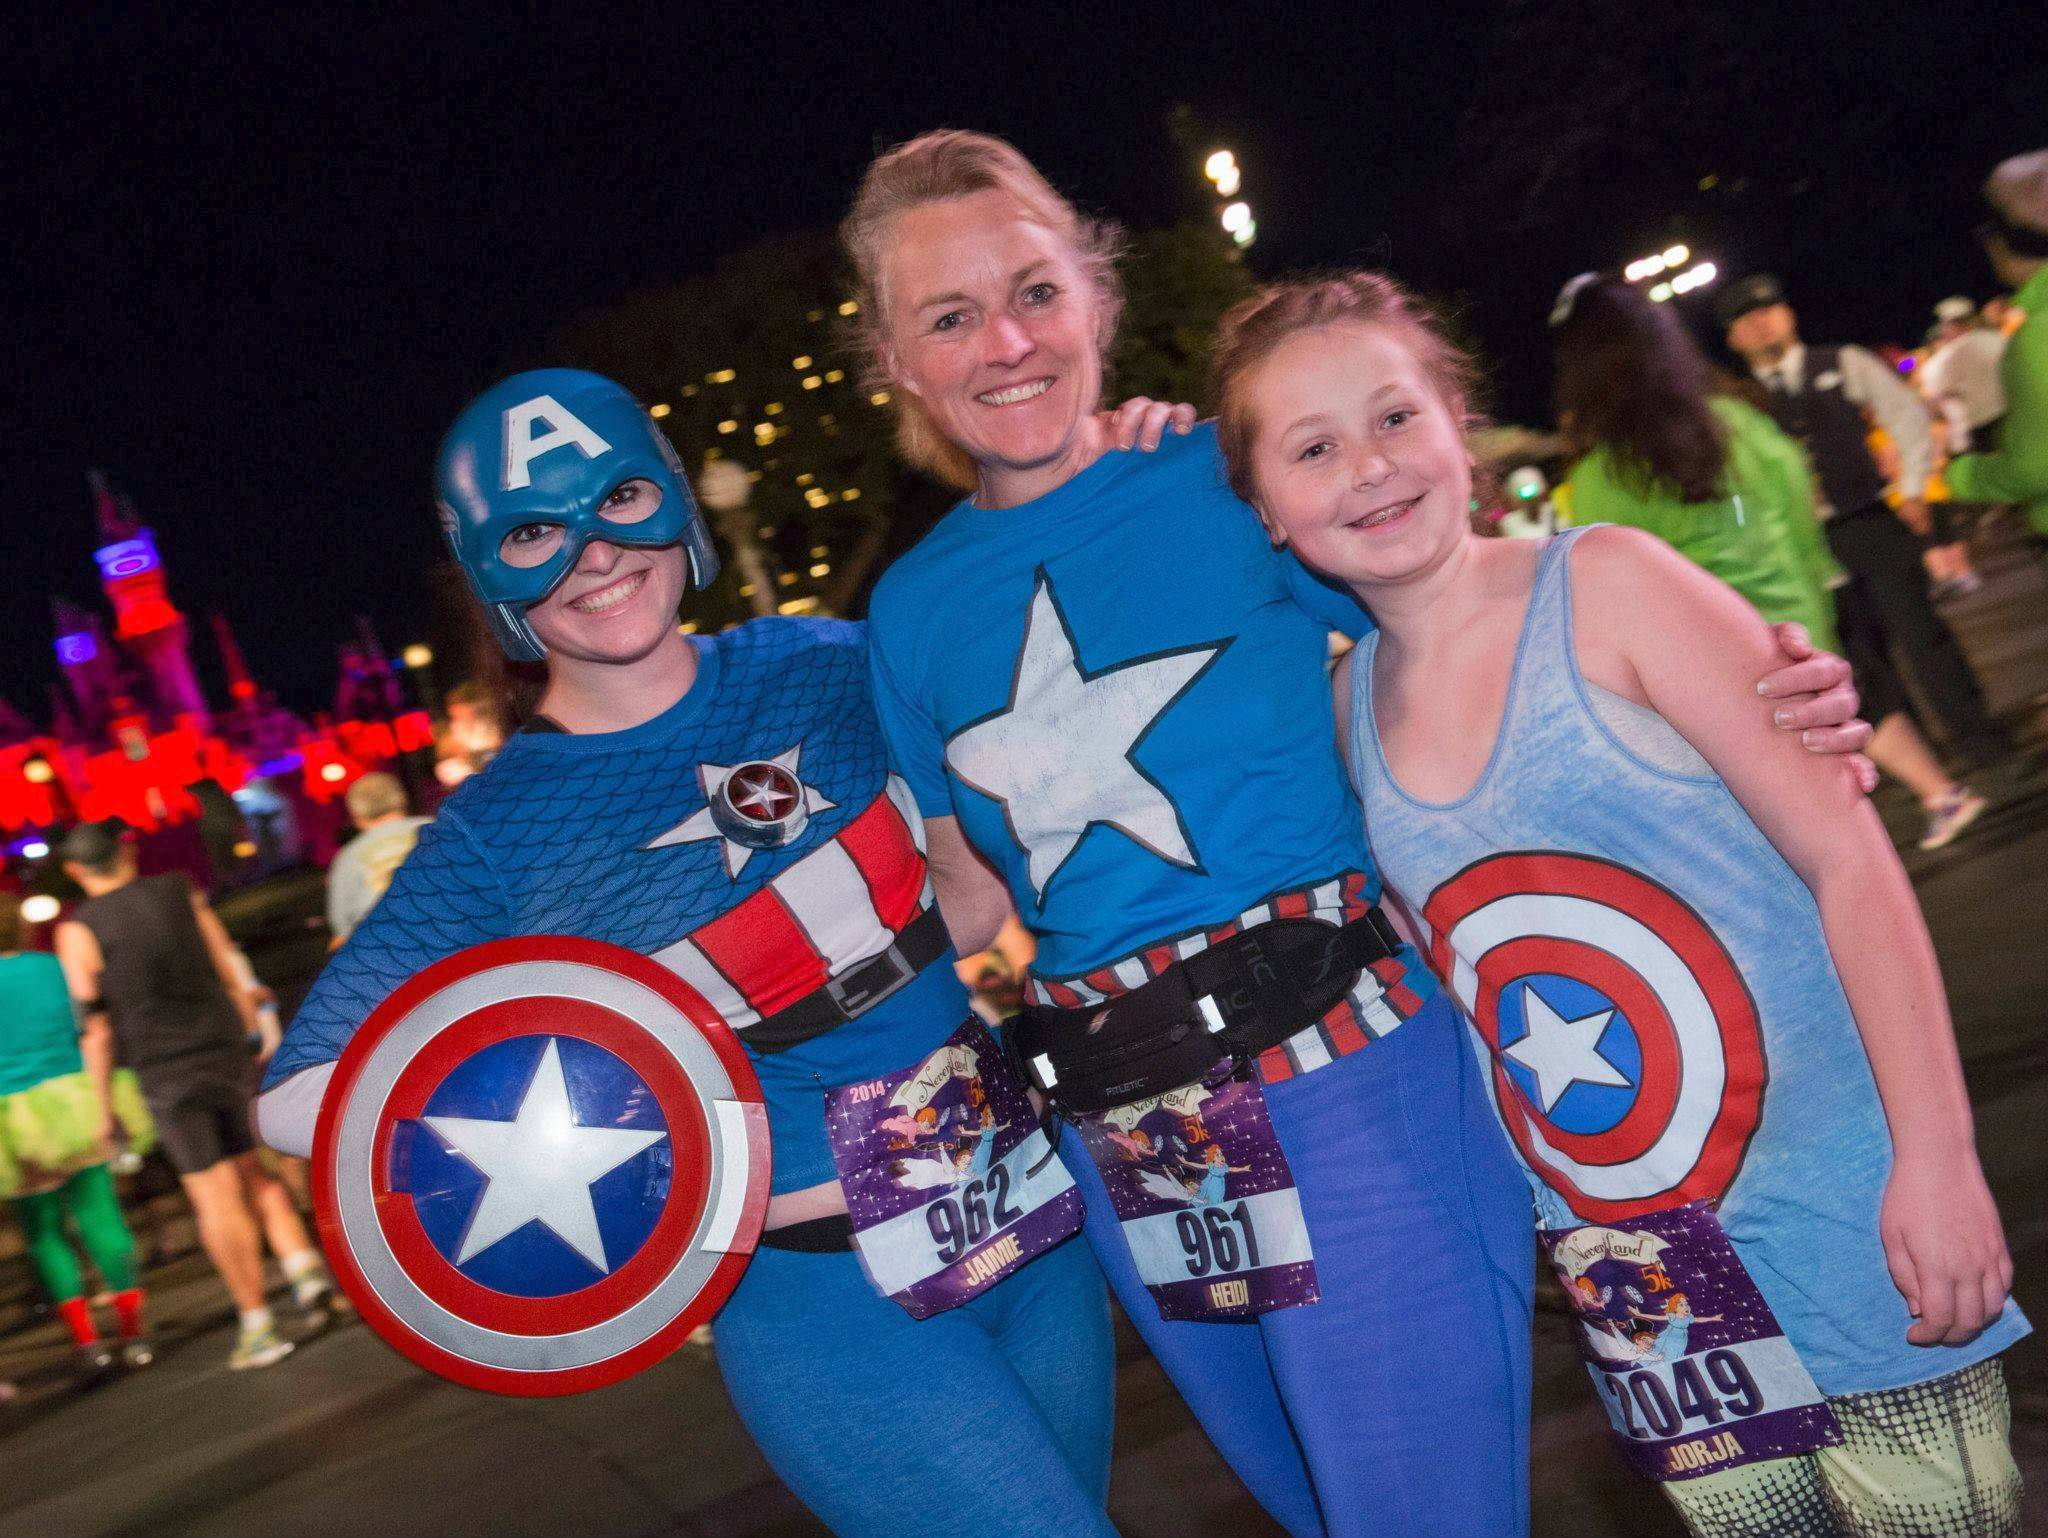 These Captain America-themed runners from the Disneyland Never Land Family Fun 5K on Jan. 17 might want to recycle their outfits for the new Disneyland Avengers Super Heroes Half Marathon debuting Sunday, Nov. 16, in Anaheim, Calif.